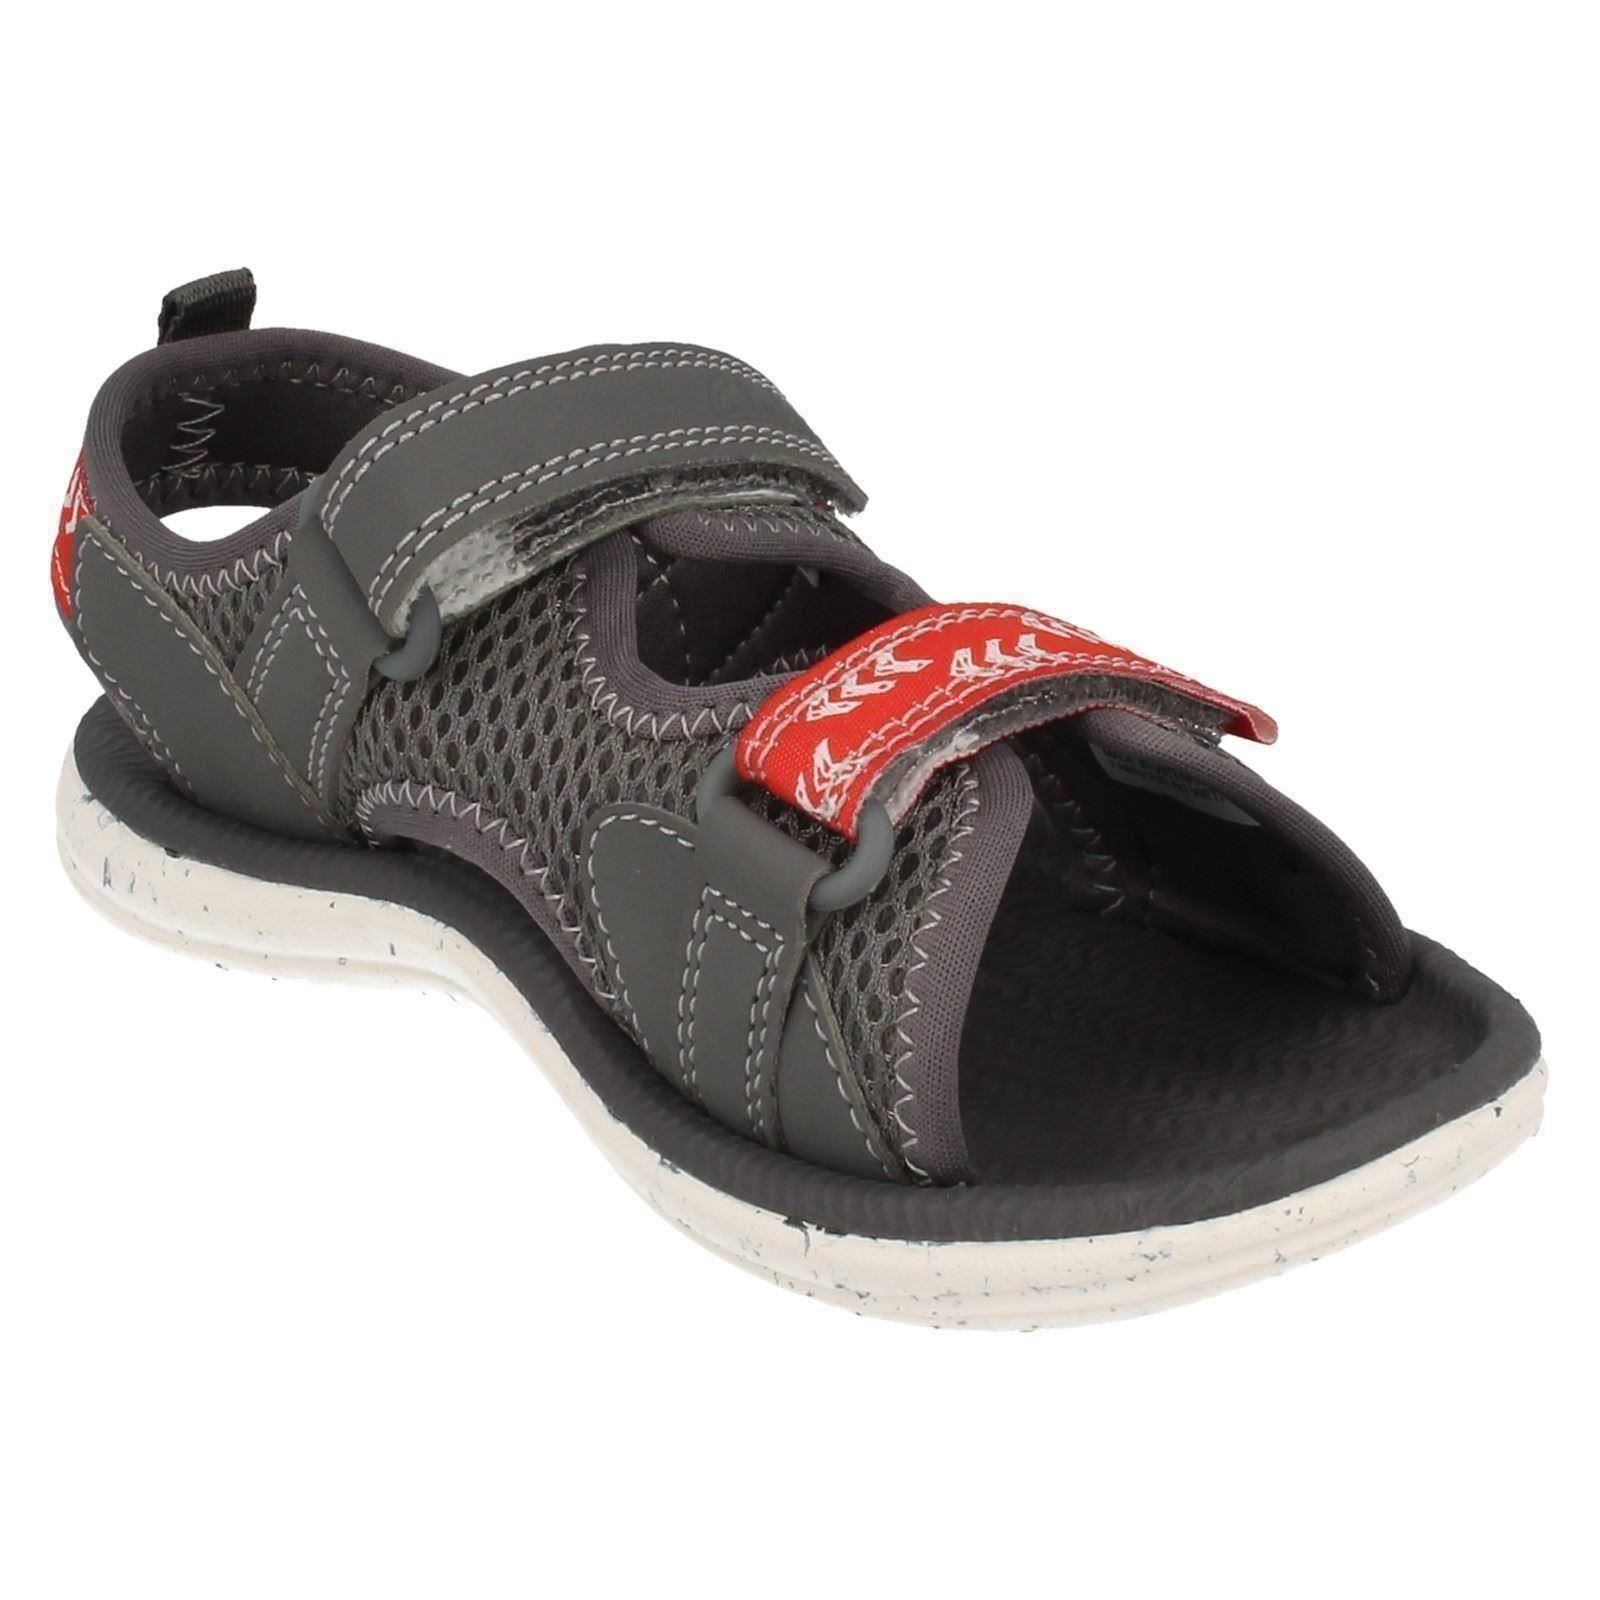 Infant / Junior Boys Clarks Riptape Strap Beach Pool Play Sandals - Piranha Boy